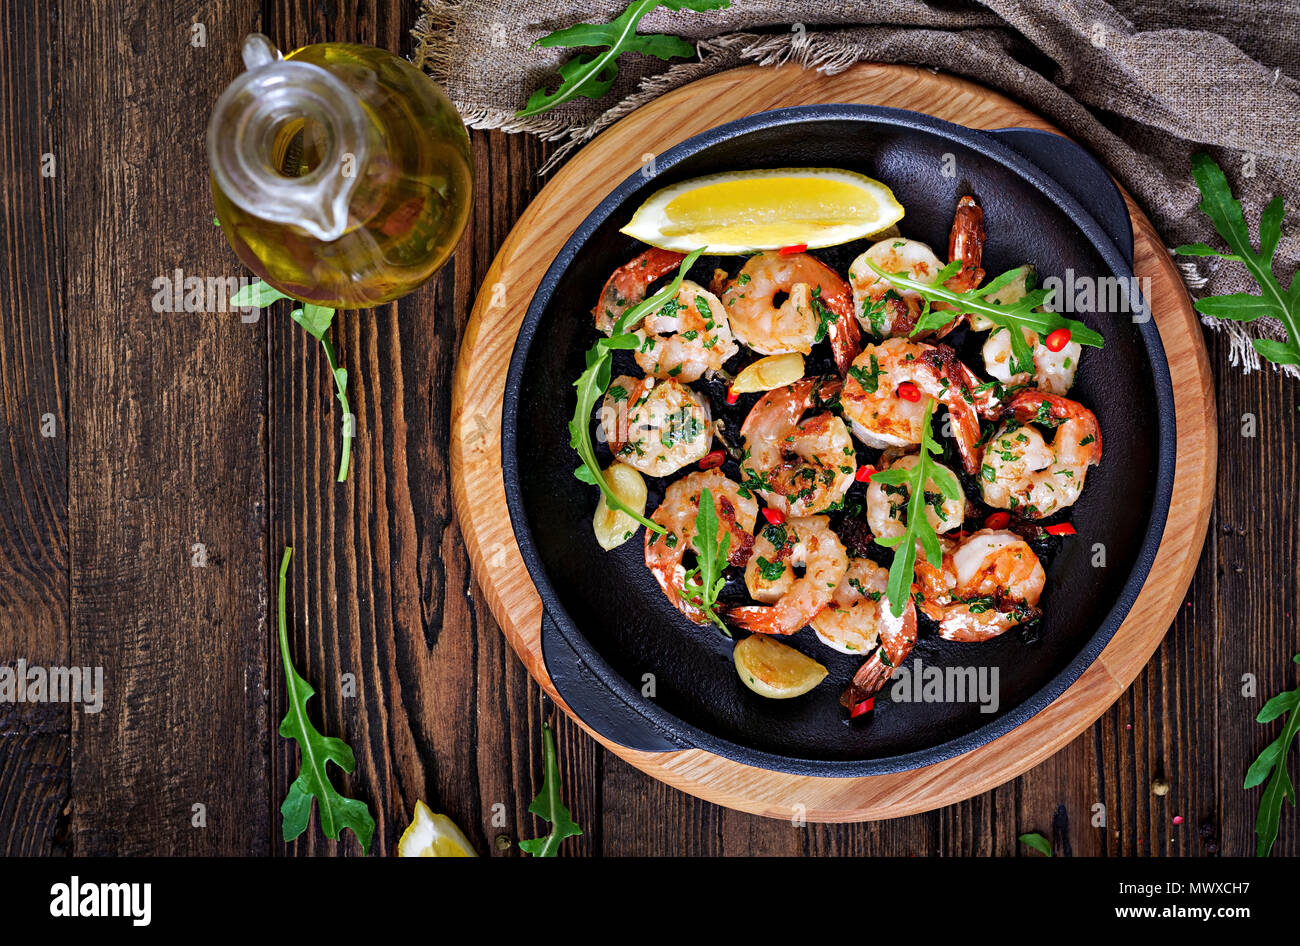 Prawns Shrimps roasted in garlic butter with lemon and parsley on wooden background. Healthy food. Top view. Flat lay. - Stock Image